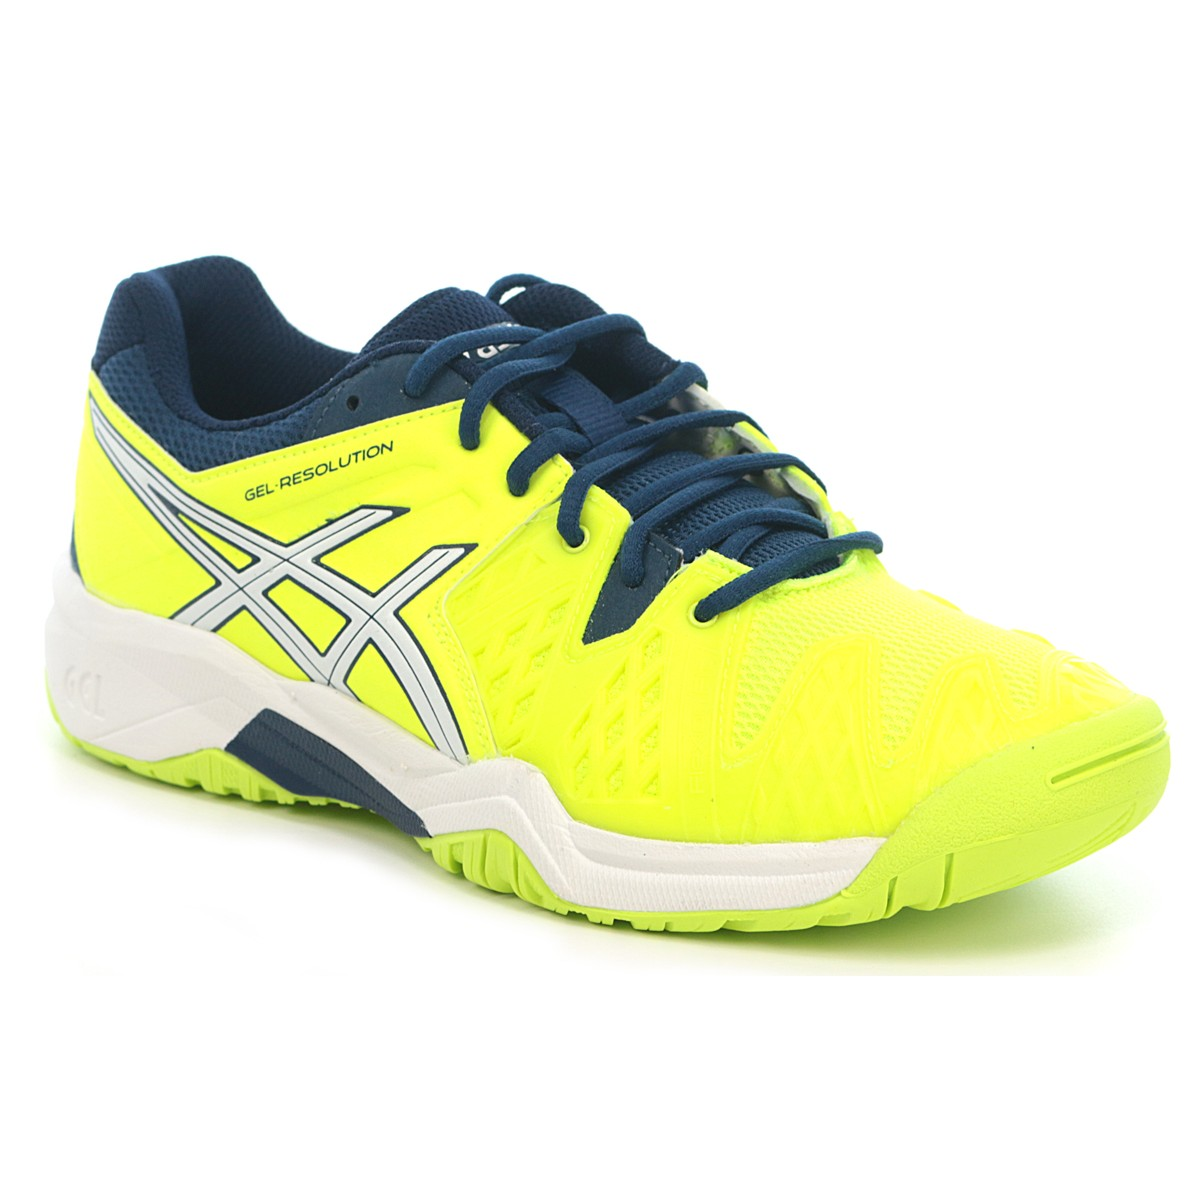 discount a8012 d9ba4 CHAUSSURES ASICS JUNIOR GEL-RESOLUTION 6 GS +